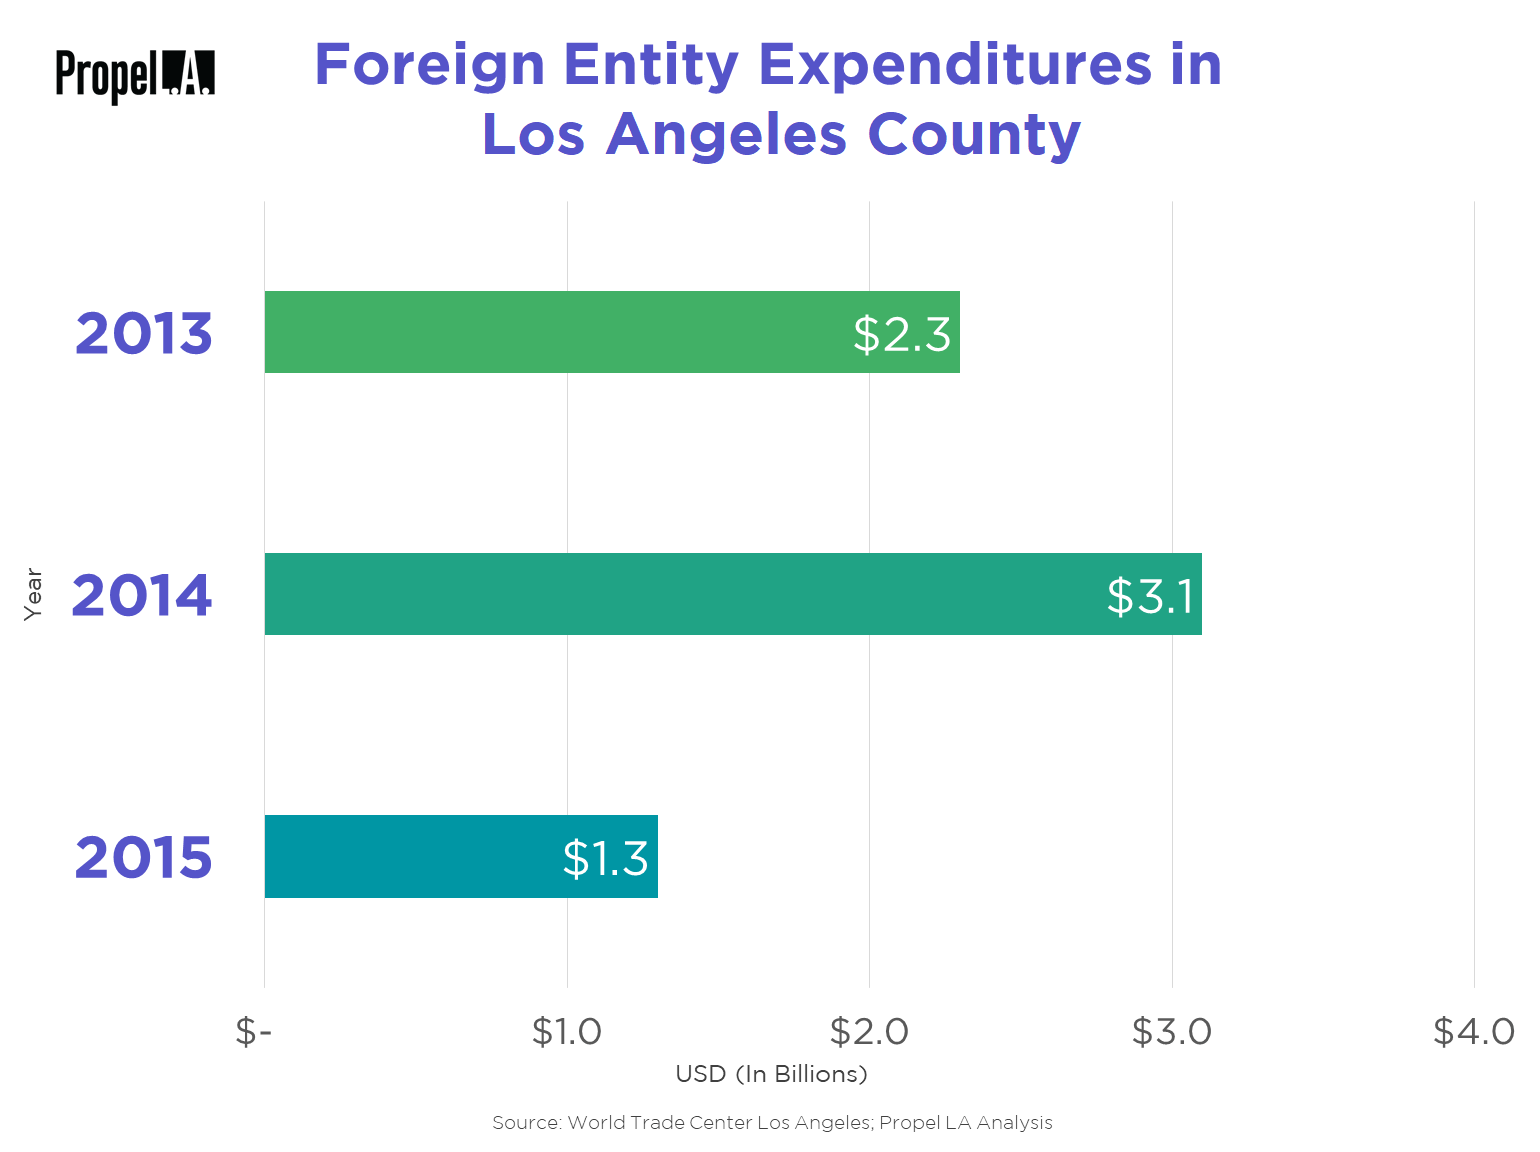 Foreign Entity Expenditures in Los Angeles County